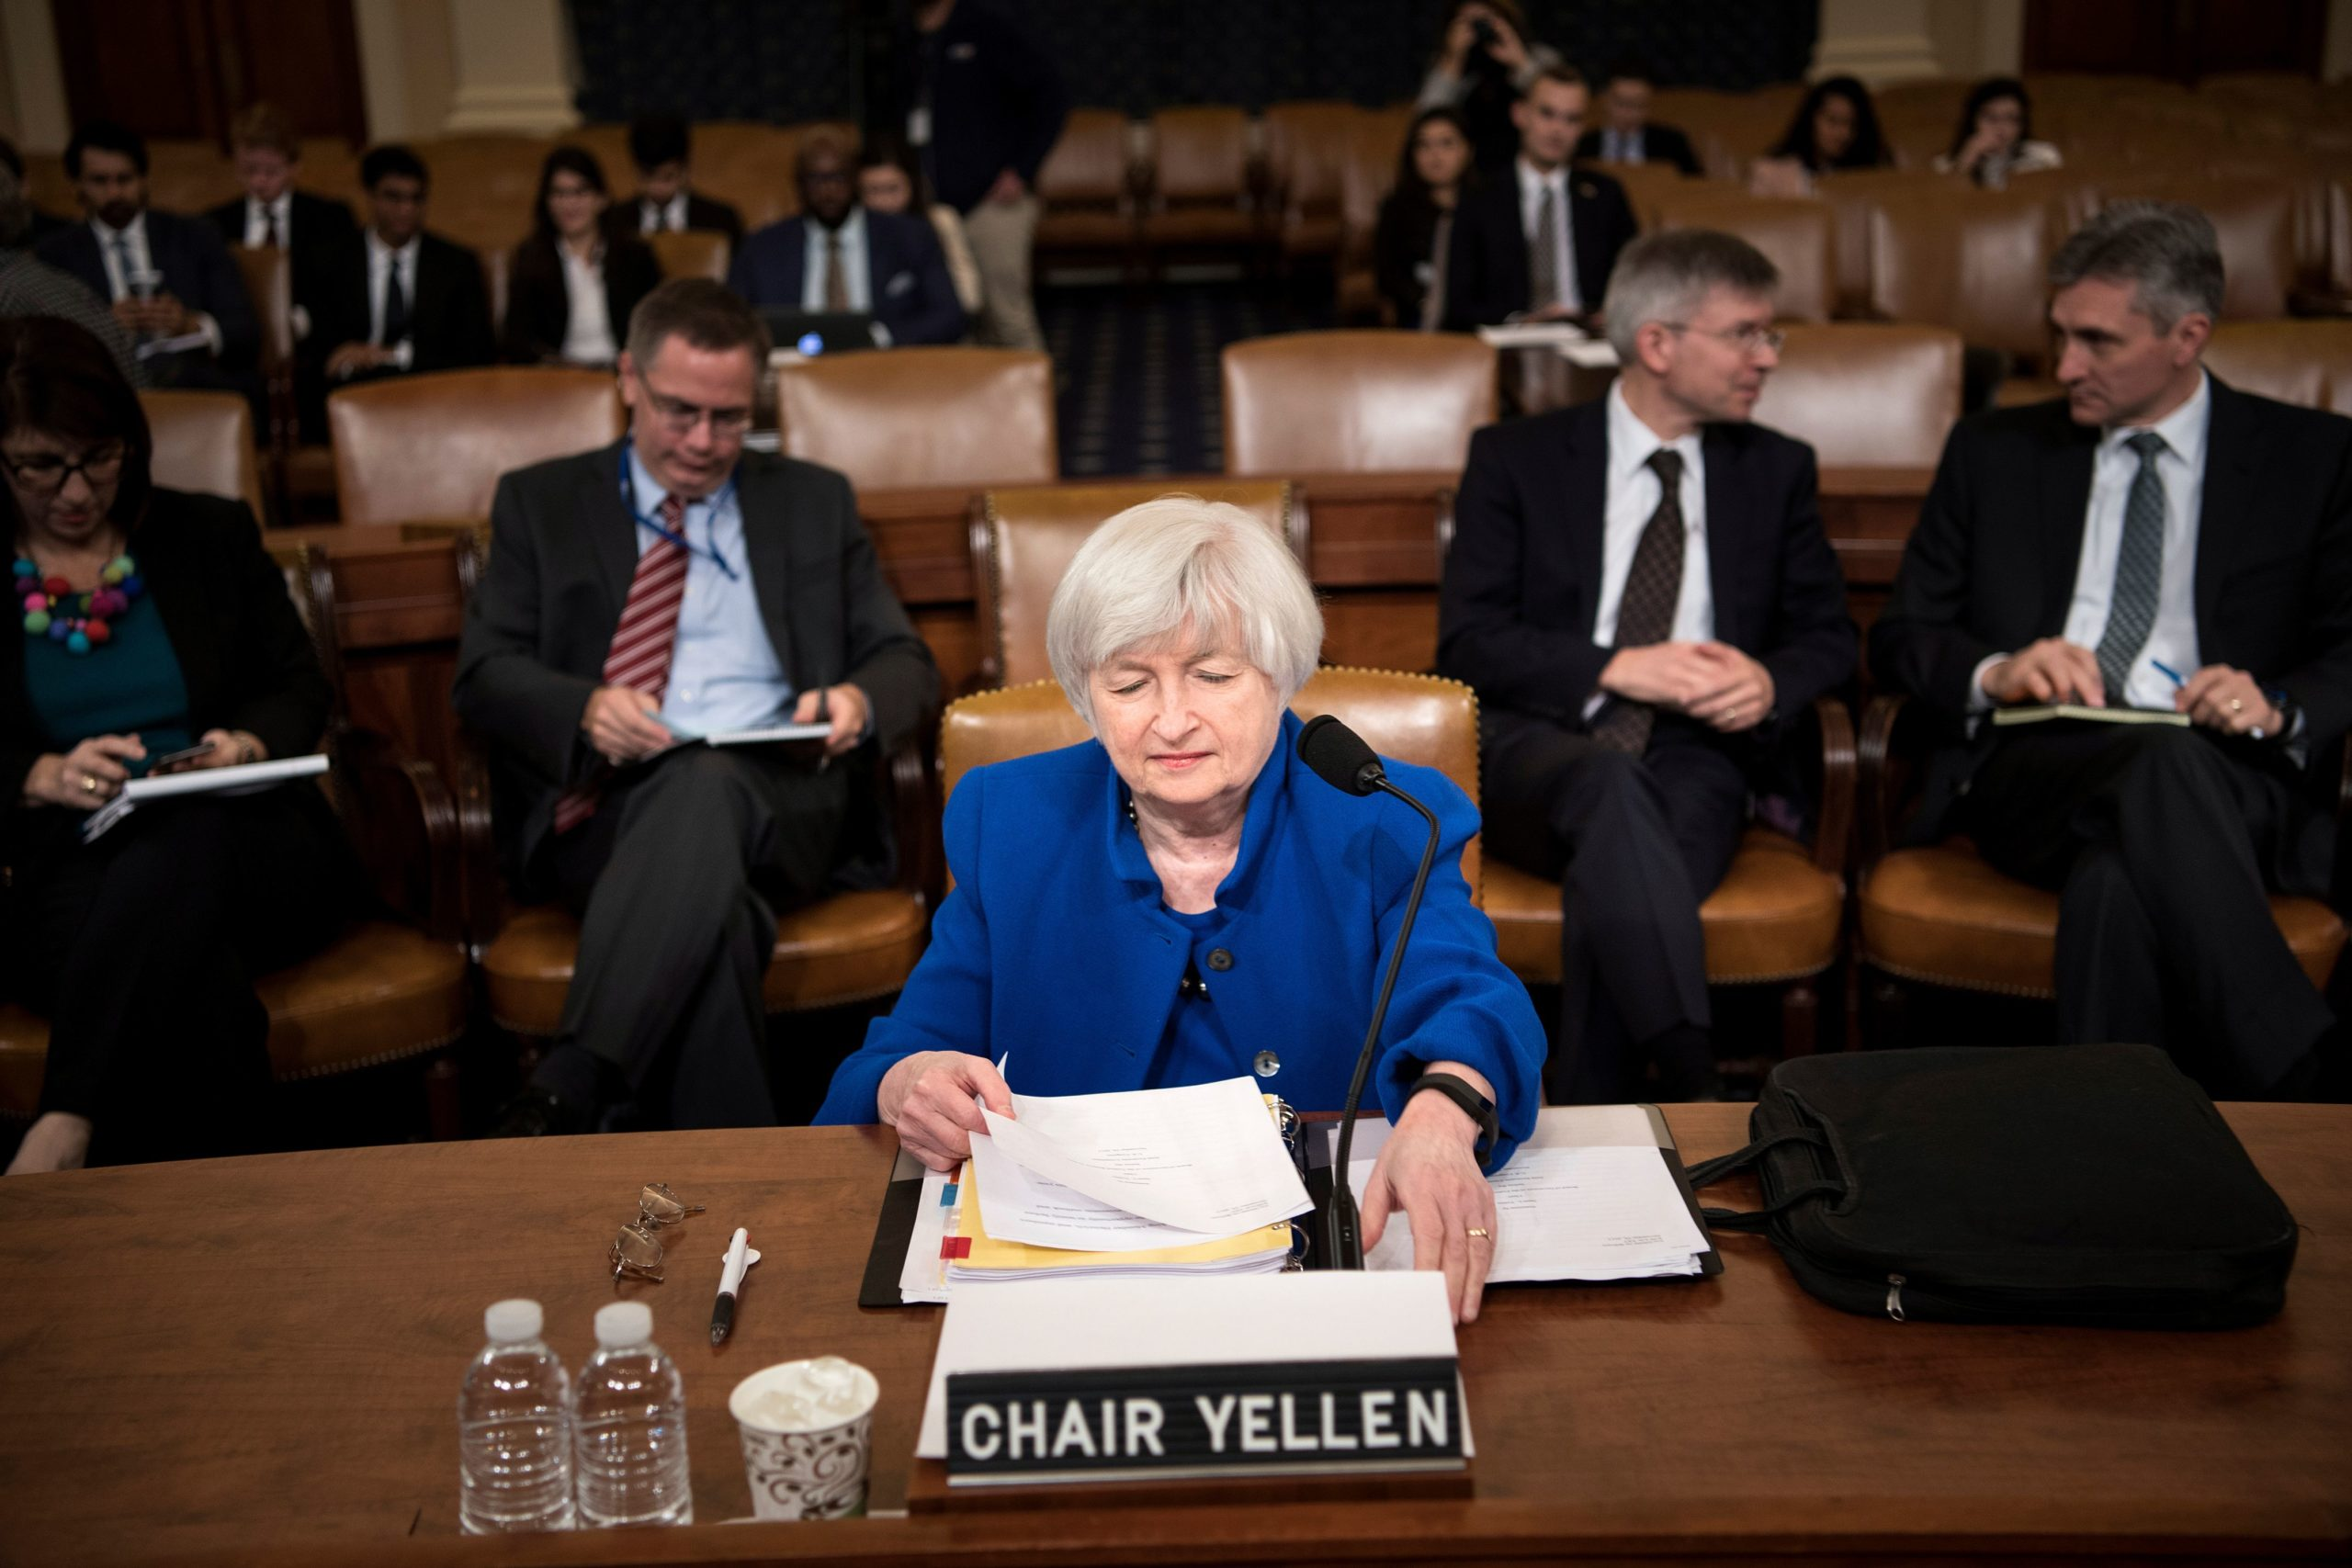 Former Federal Reserve Chairwoman Janet Yellen looks at her papers before a hearing of the Joint Economic Committee on Capitol Hill, in November 2017. (Brendan Smialowski/AFP via Getty Images)